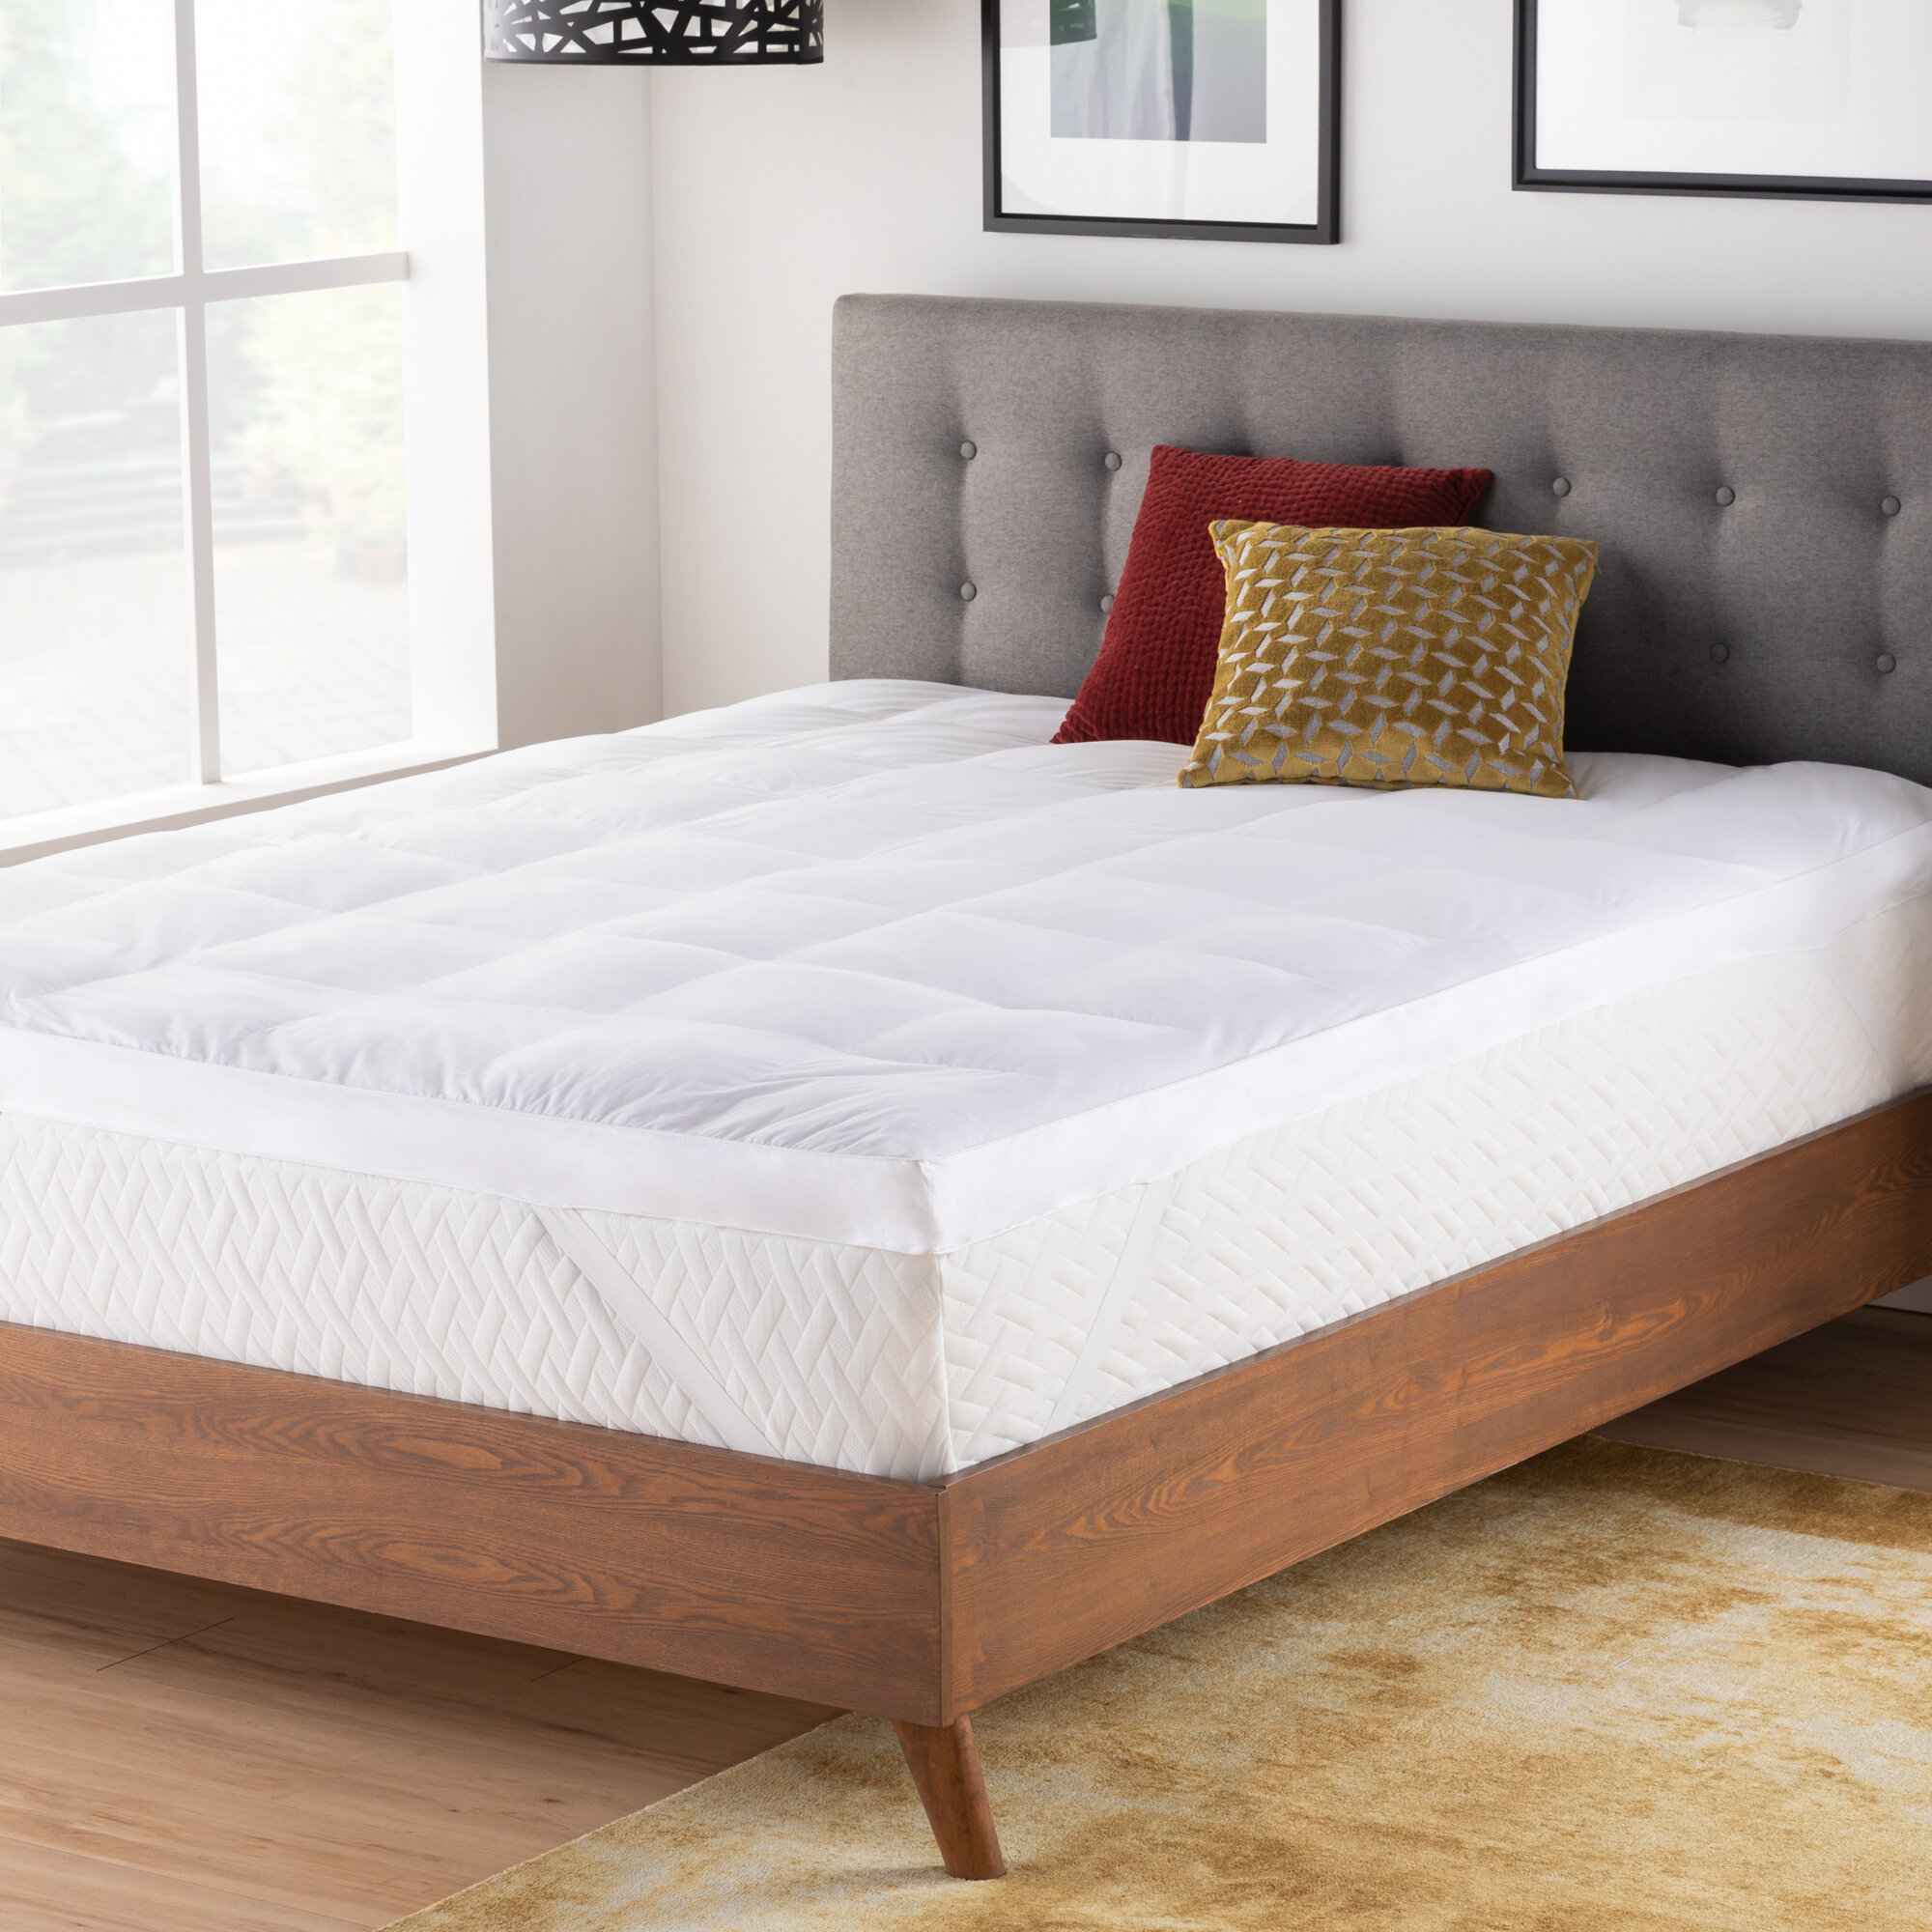 This Mattress George Clarke Amp Partners